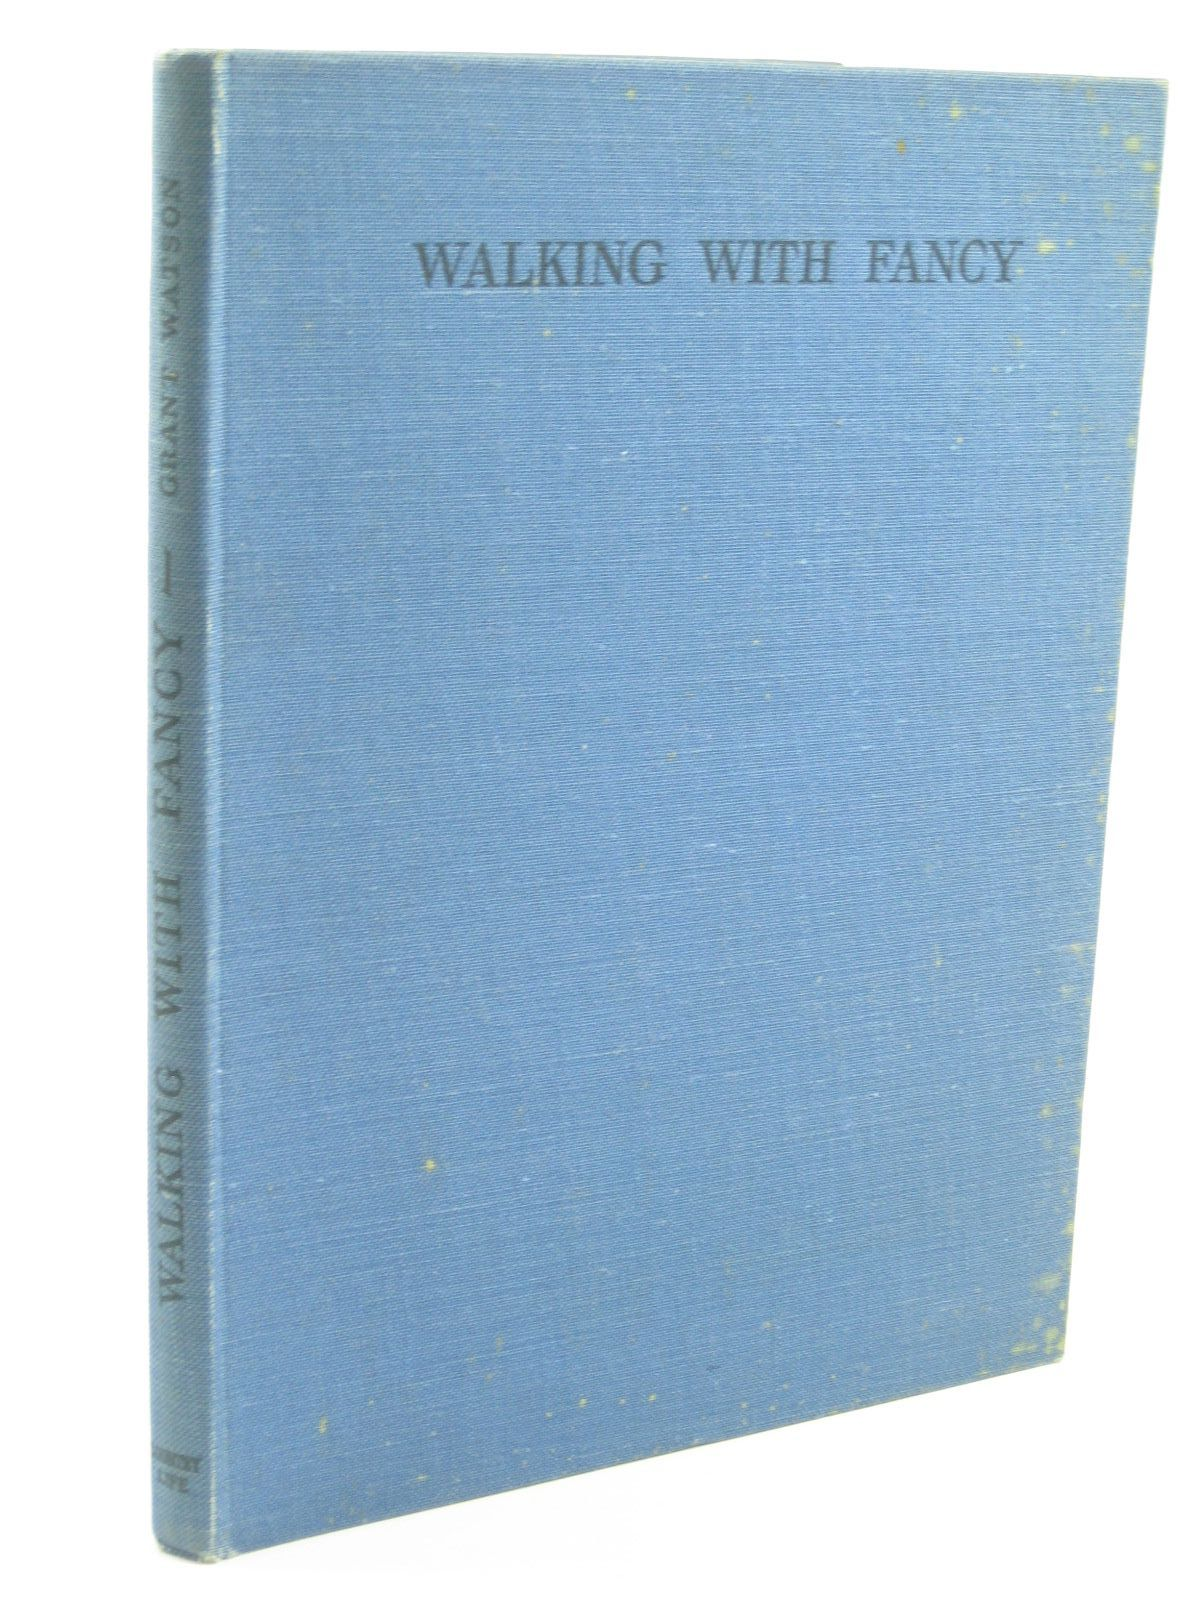 Photo of WALKING WITH FANCY written by Watson, E.L. Grant illustrated by Tunnicliffe, C.F. published by Country Life Ltd. (STOCK CODE: 1310387)  for sale by Stella & Rose's Books